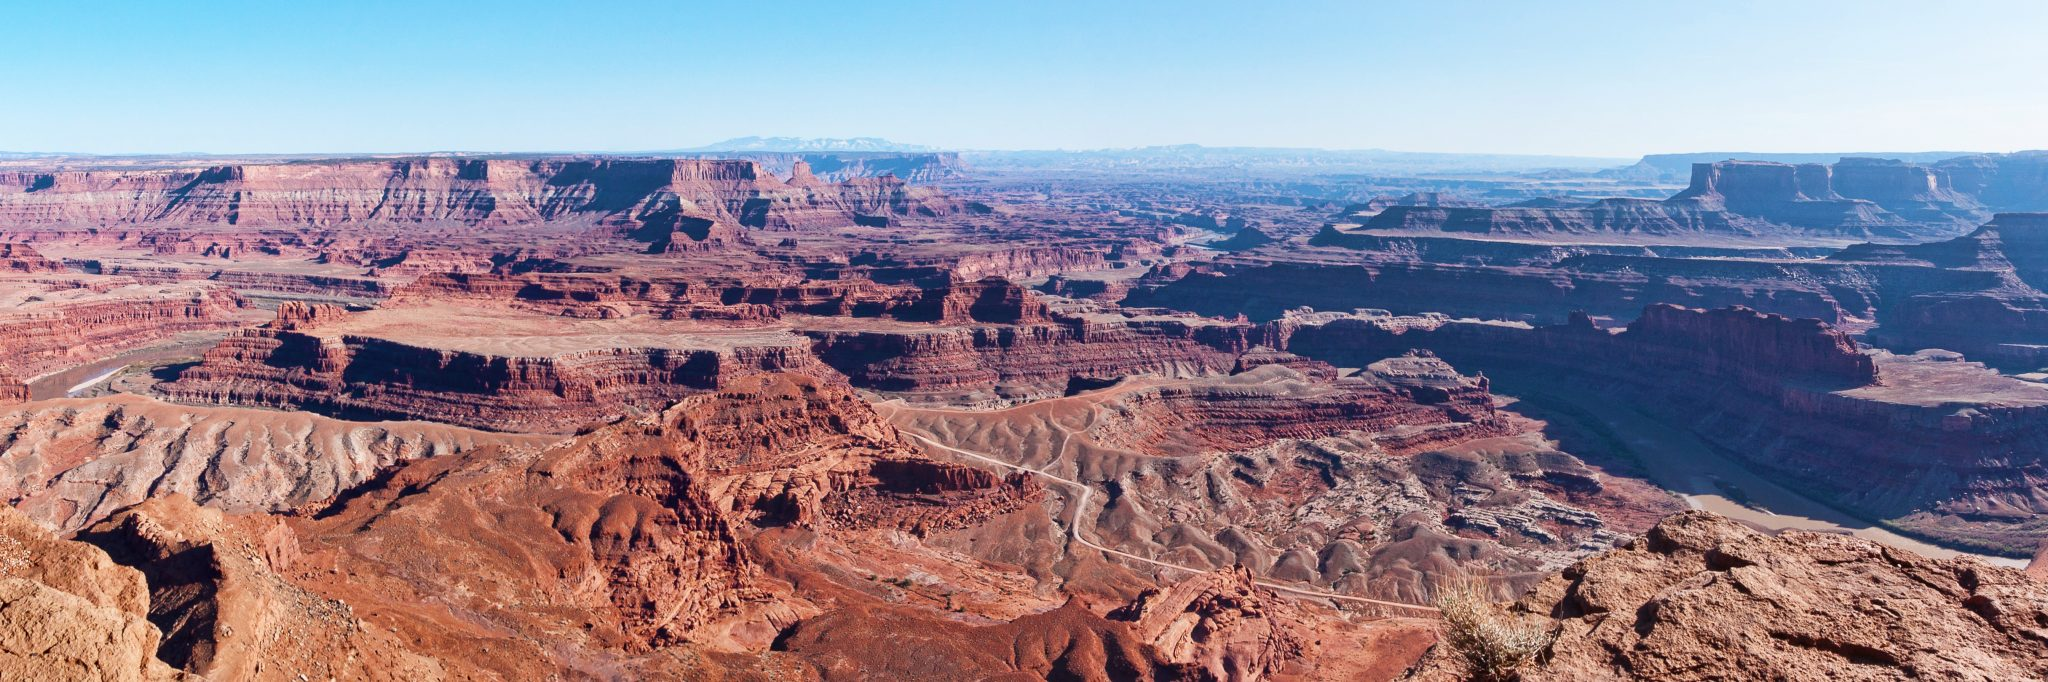 The Canyonlands Full Day guided mountain bike tour rolls along the Potash Road on benches above the Colorado River